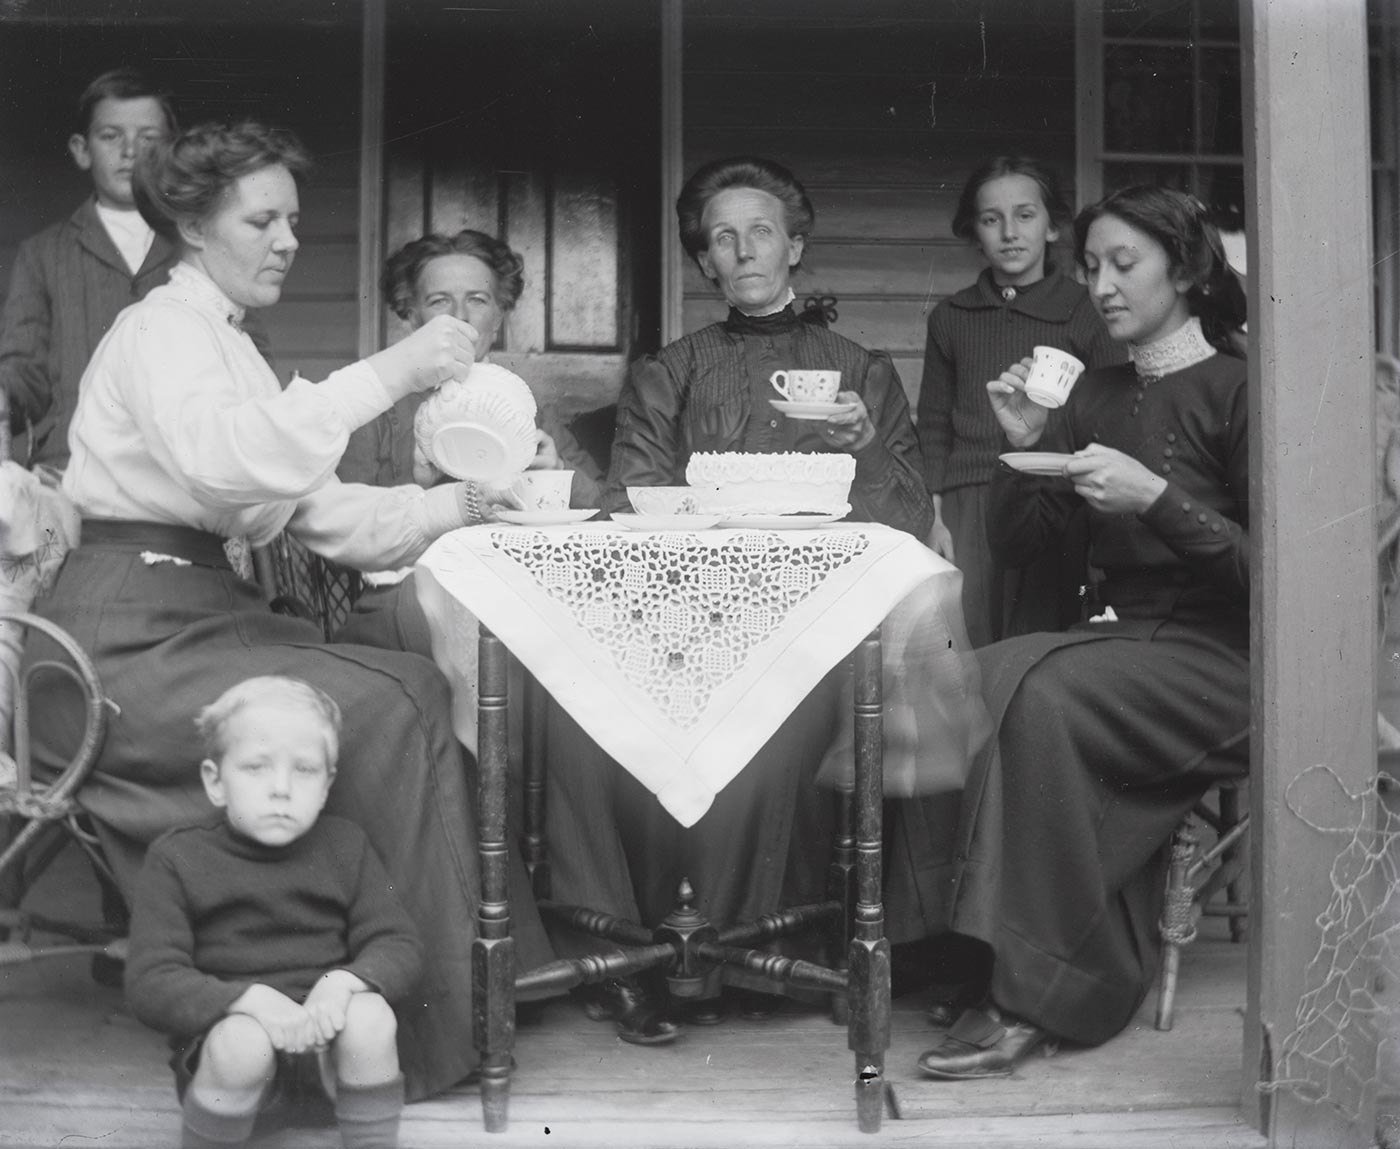 A photographic glass plate negative showing seven people having tea on a veranda. Four women are sitting at a small wooden table and a young boy is sitting on the edge of the veranda in the foreground. One of the women is pouring a cup of tea from the teapot. Another young boy and a young girl stand behind the women at the table. The table is covered with a lace tablecloth and holds teacups and a cake. - click to view larger image